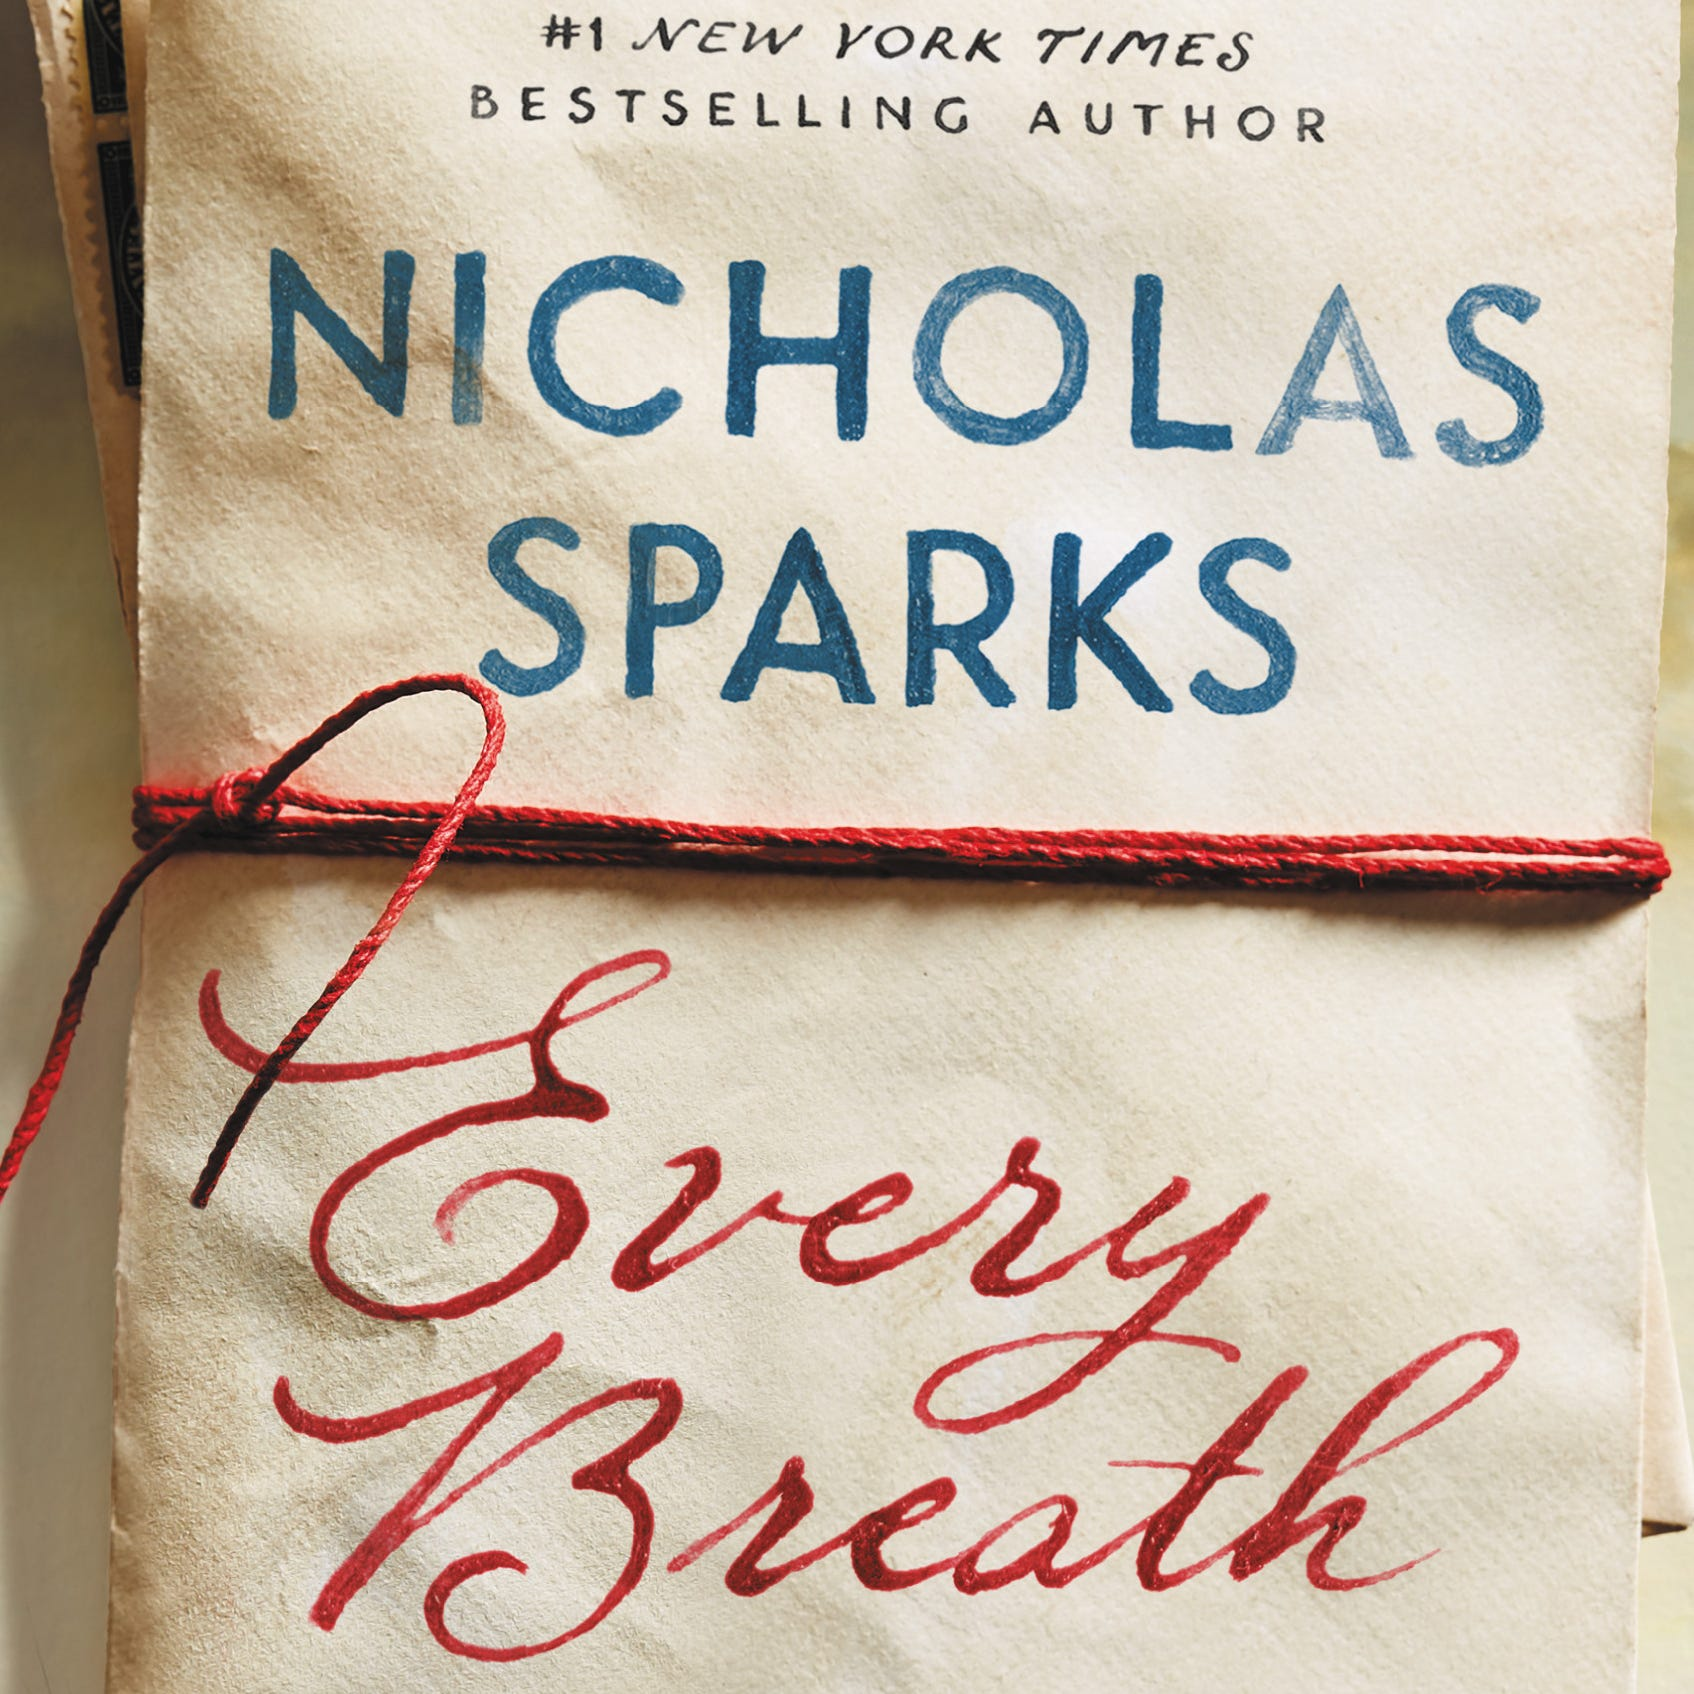 Battle of the weepies: Nicholas Sparks v. Mitch Albom. Who made us cry more?